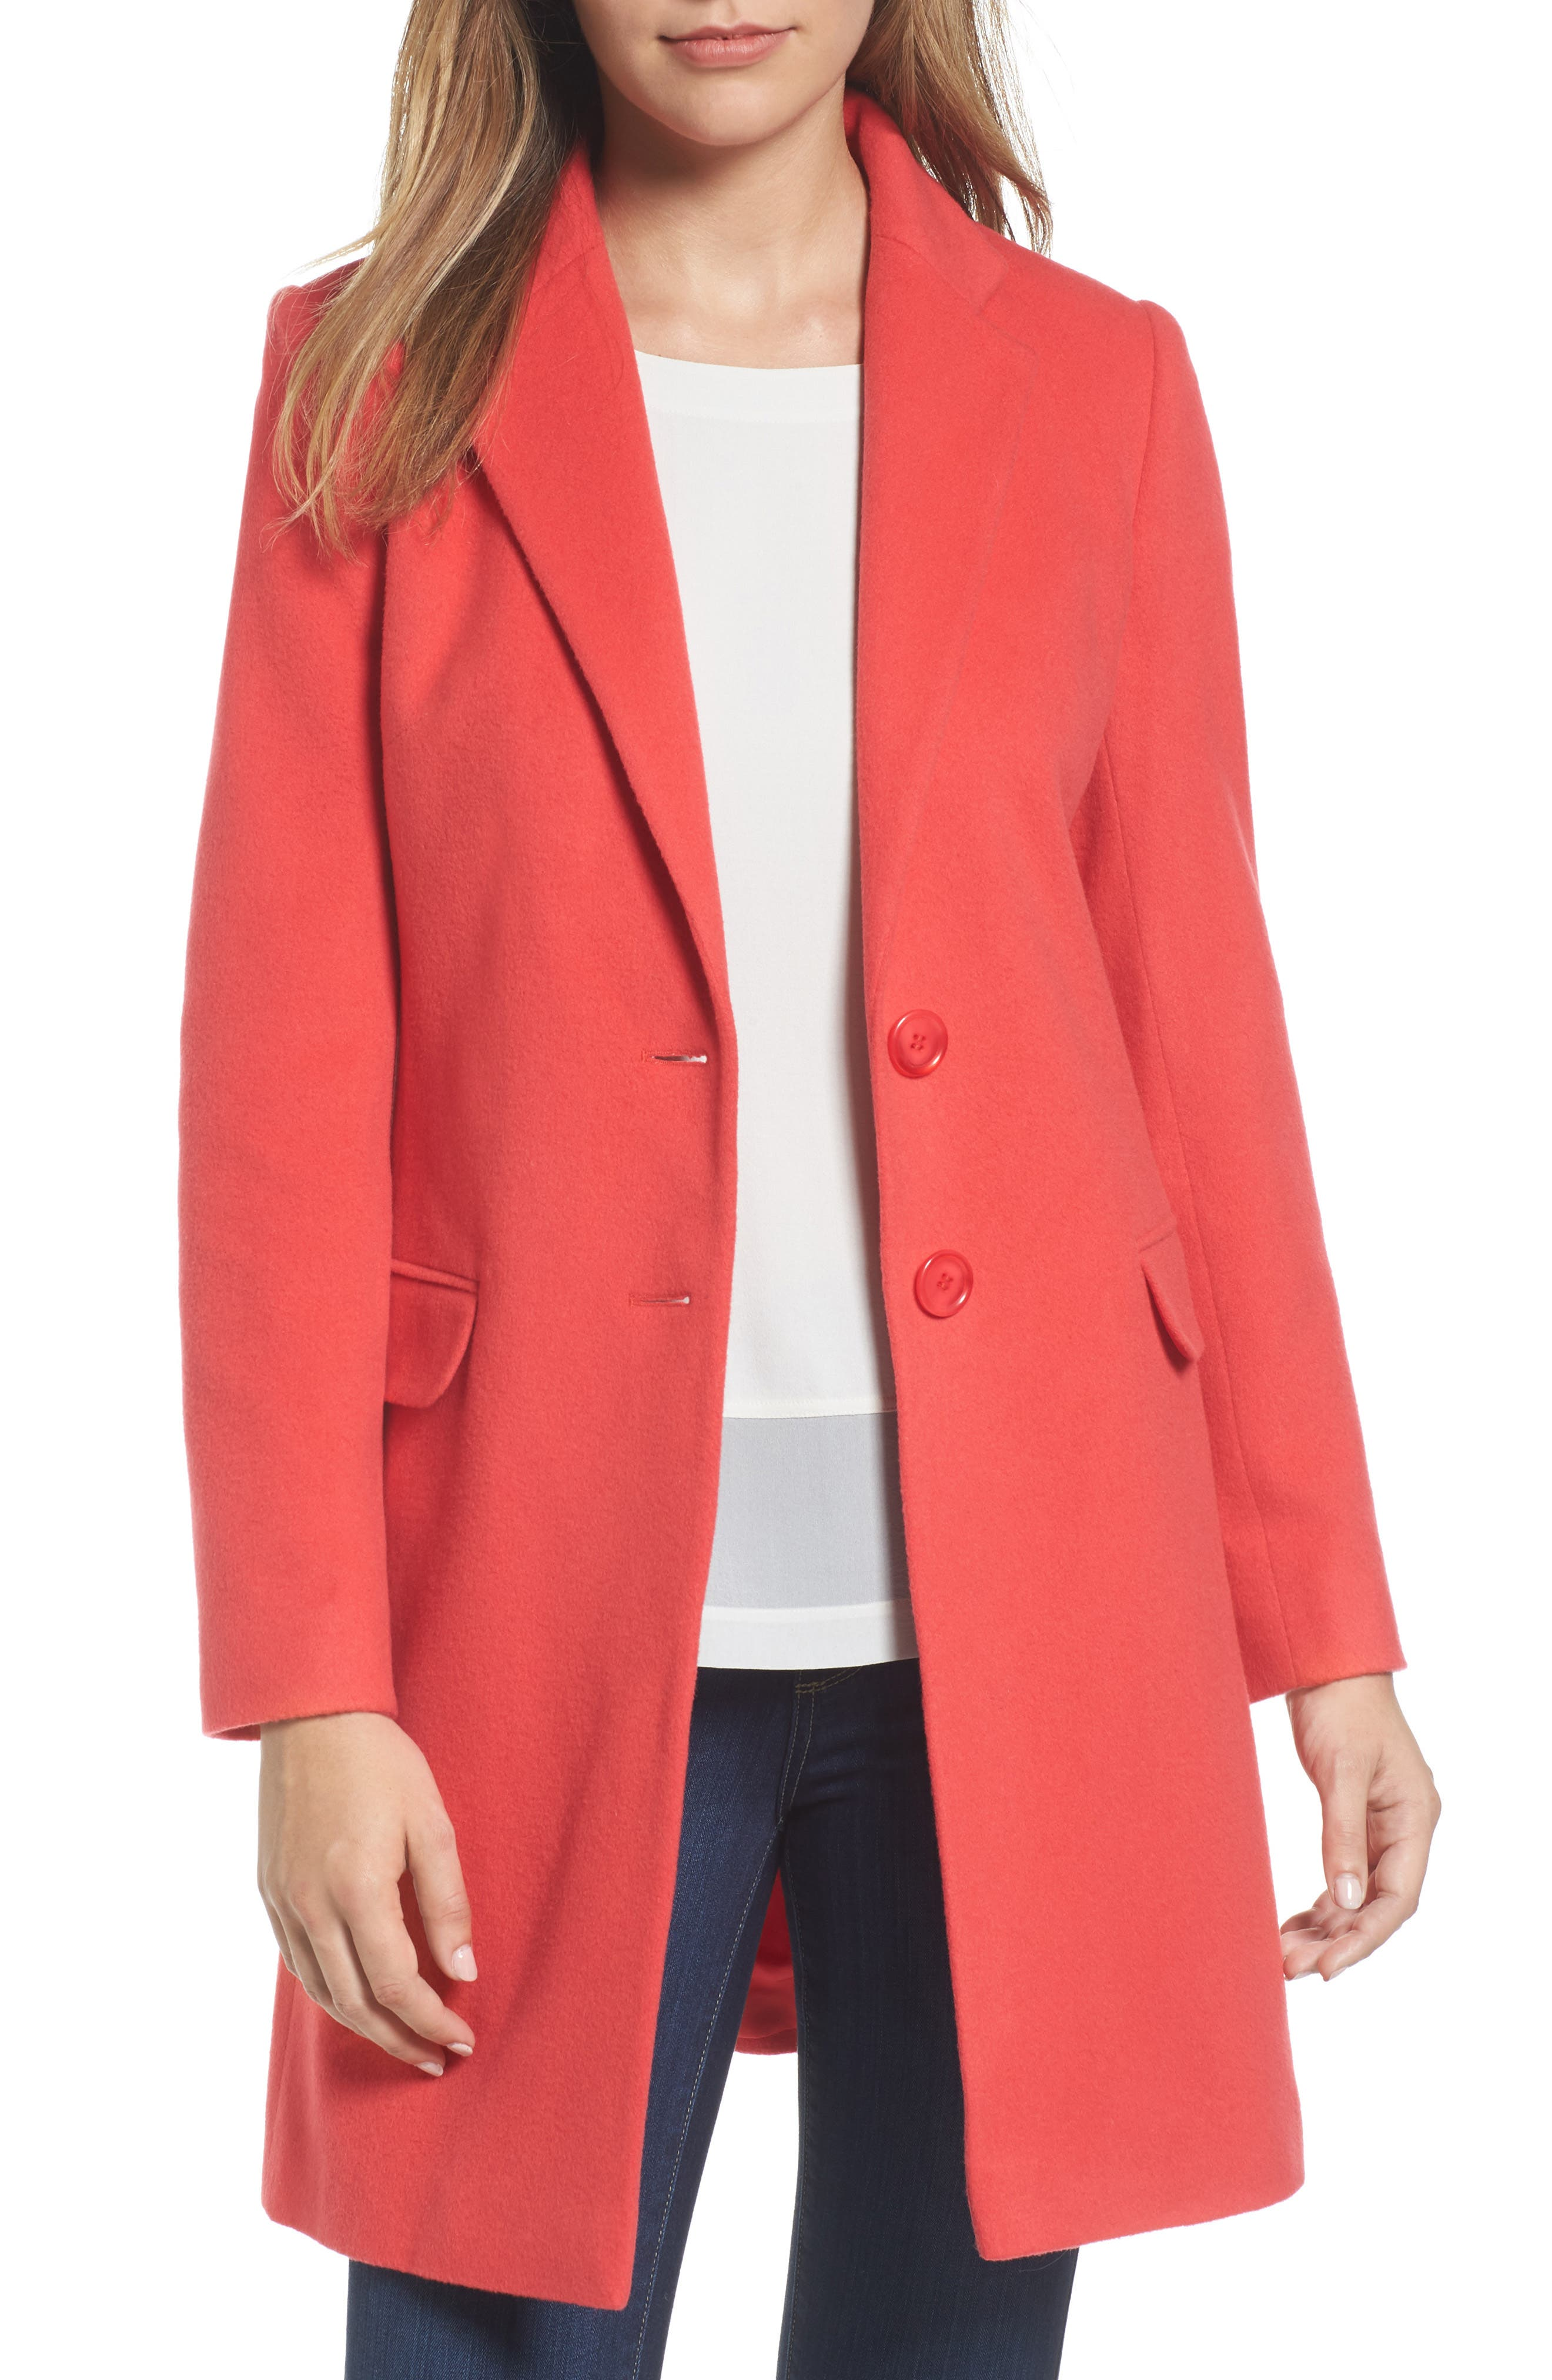 Charles Gray London Wool Blend College Coat,                             Main thumbnail 1, color,                             Coral